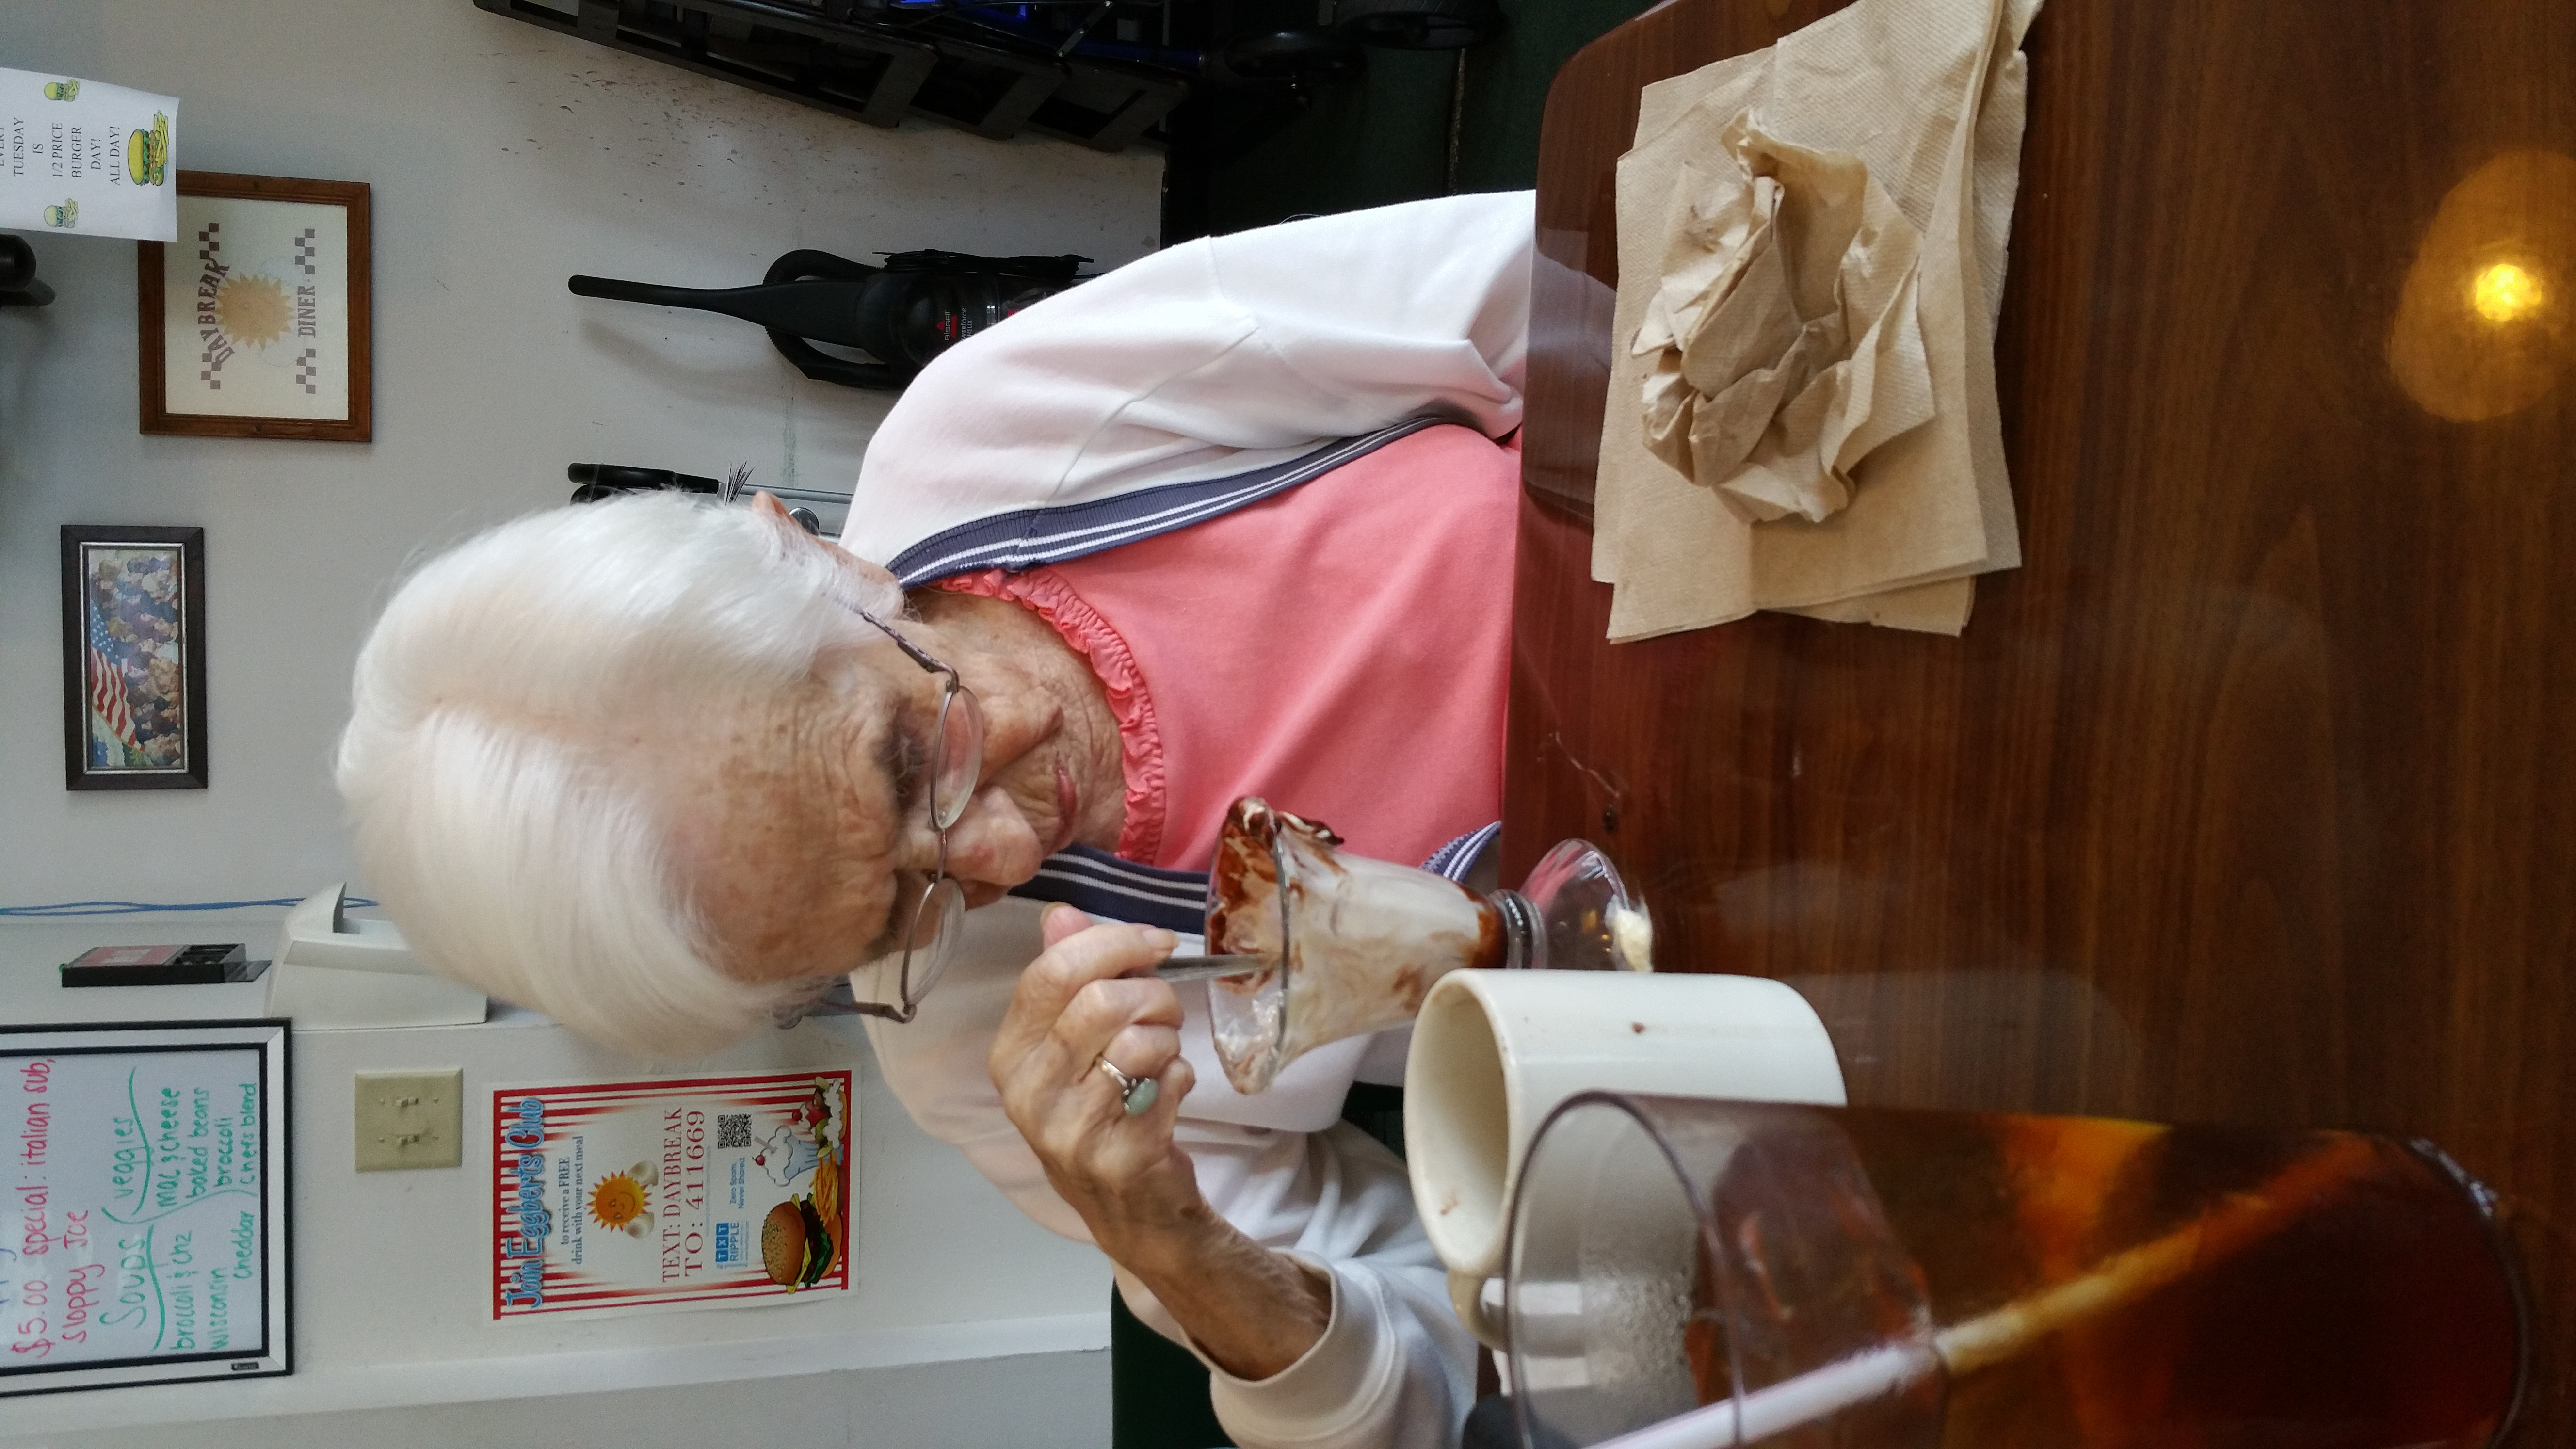 Grandmom loved her sweets